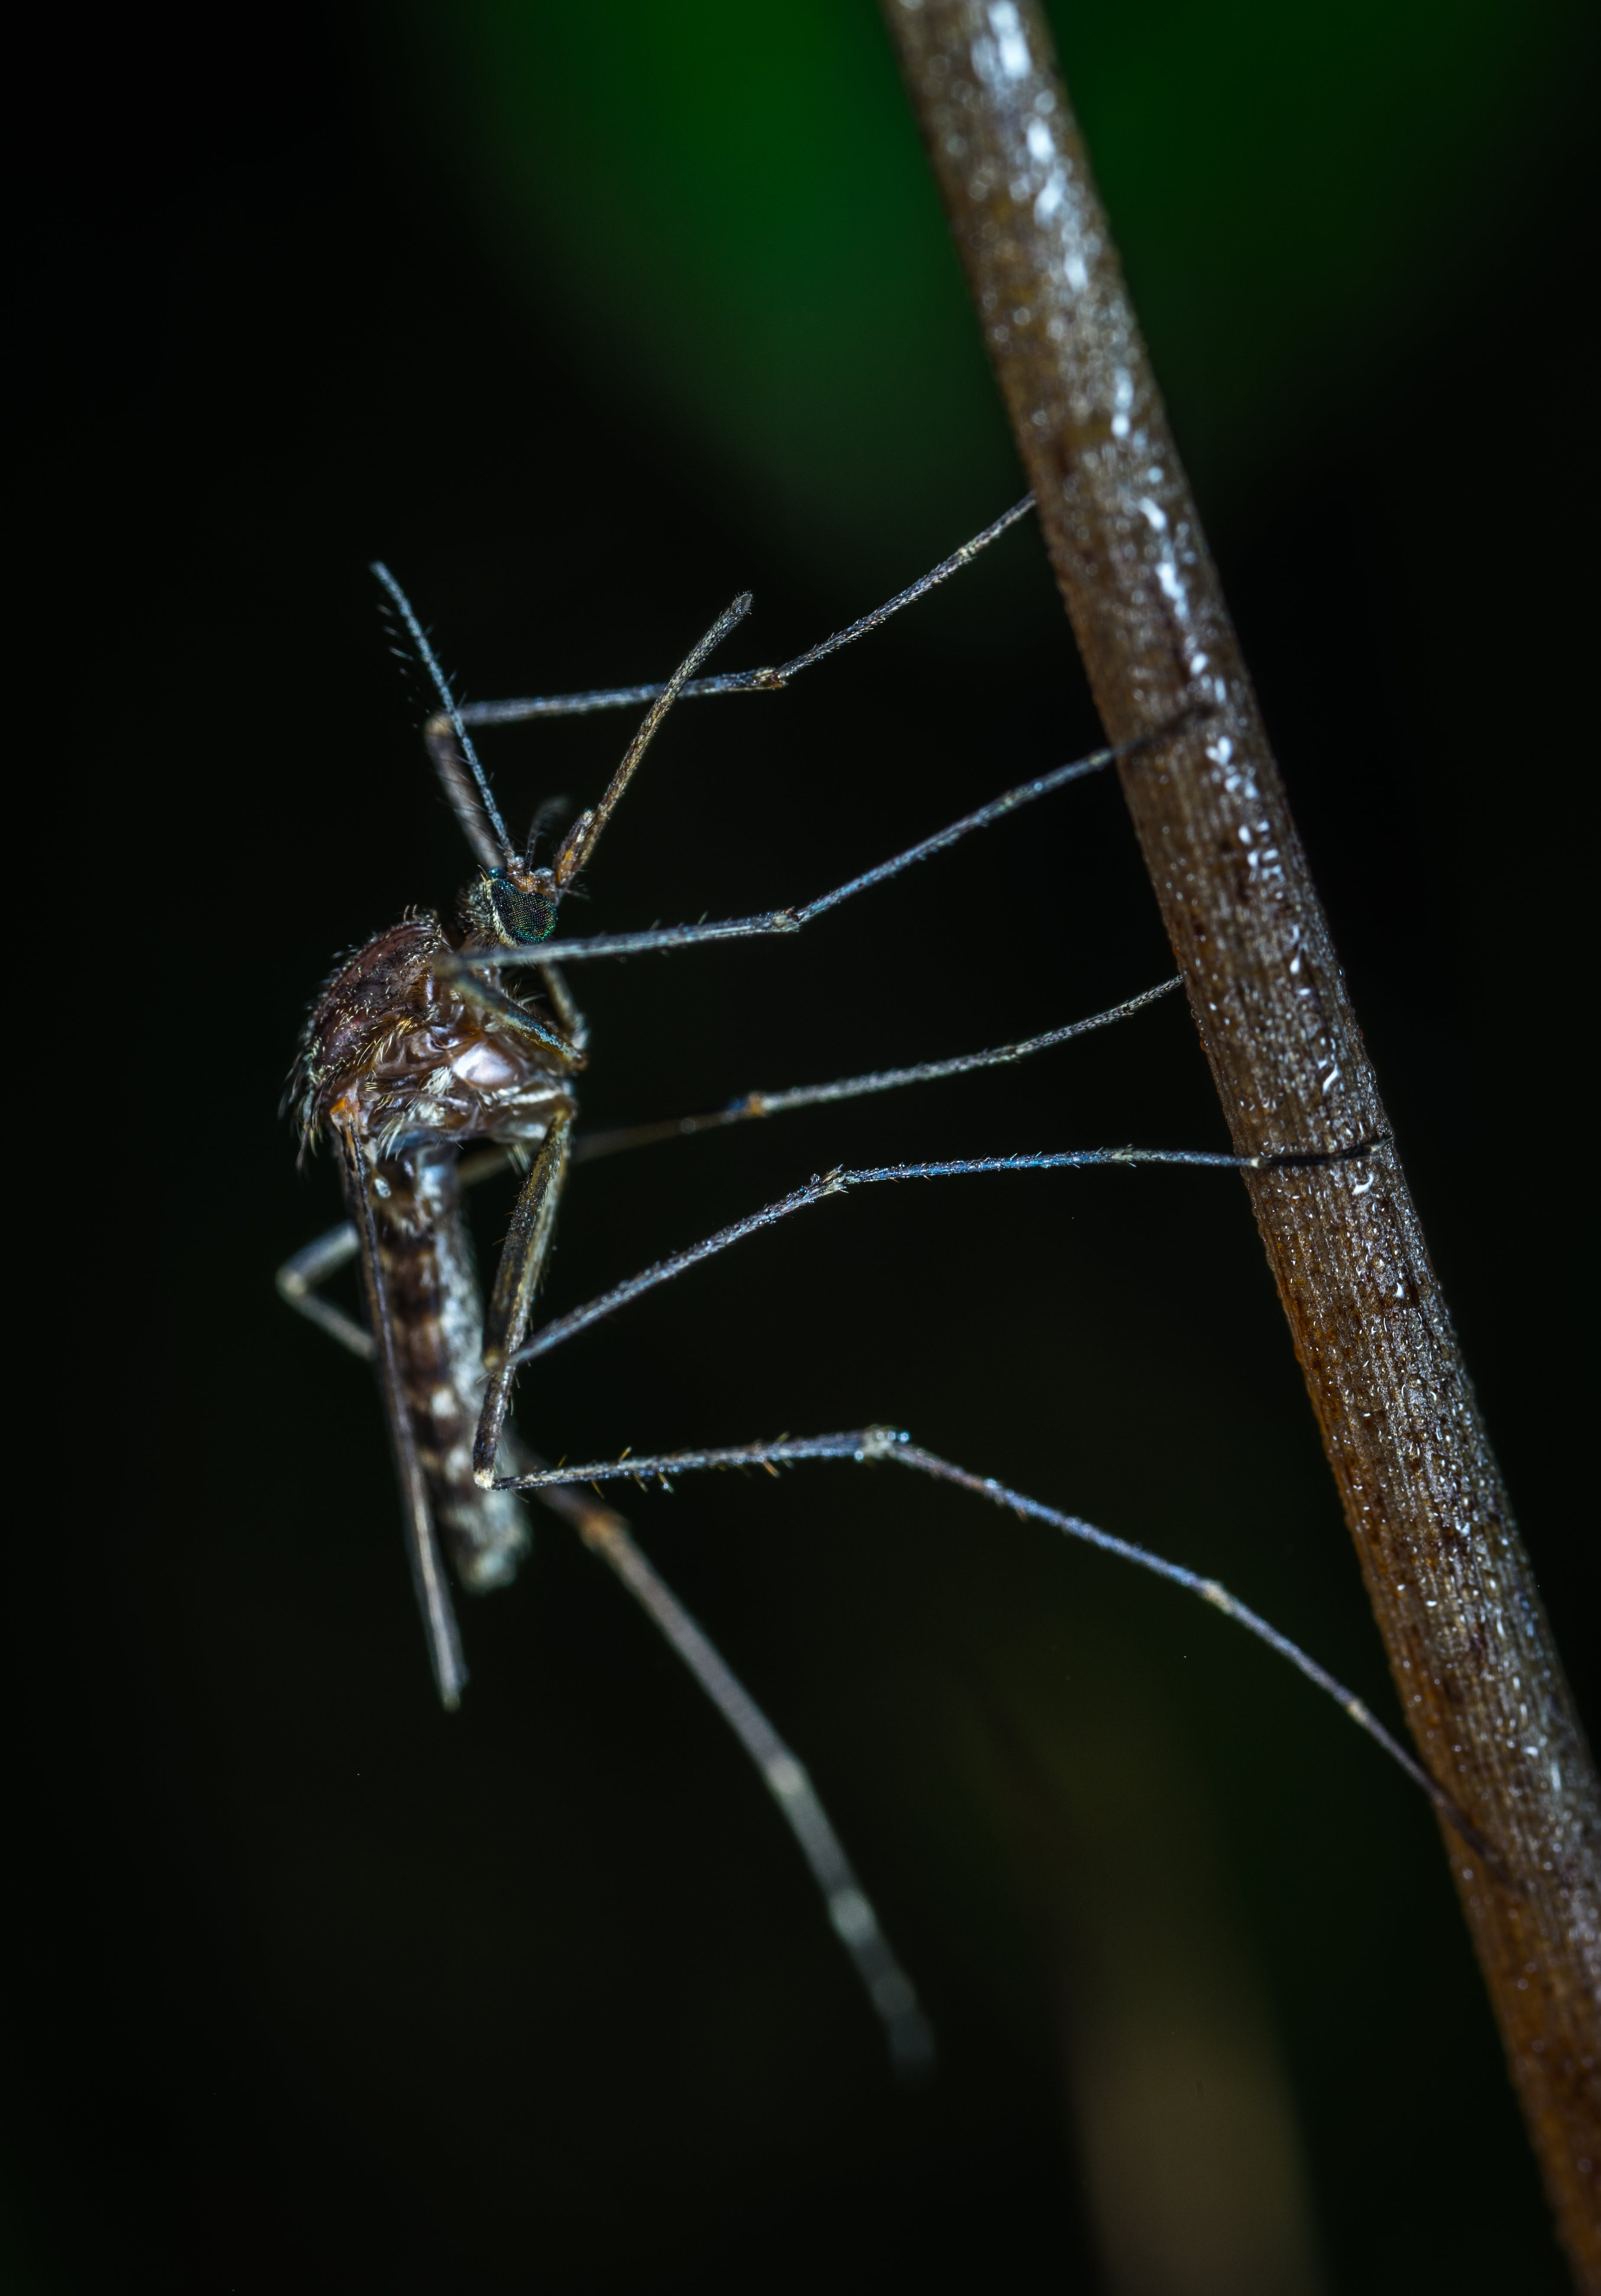 Black Mosquito Closeup Photo